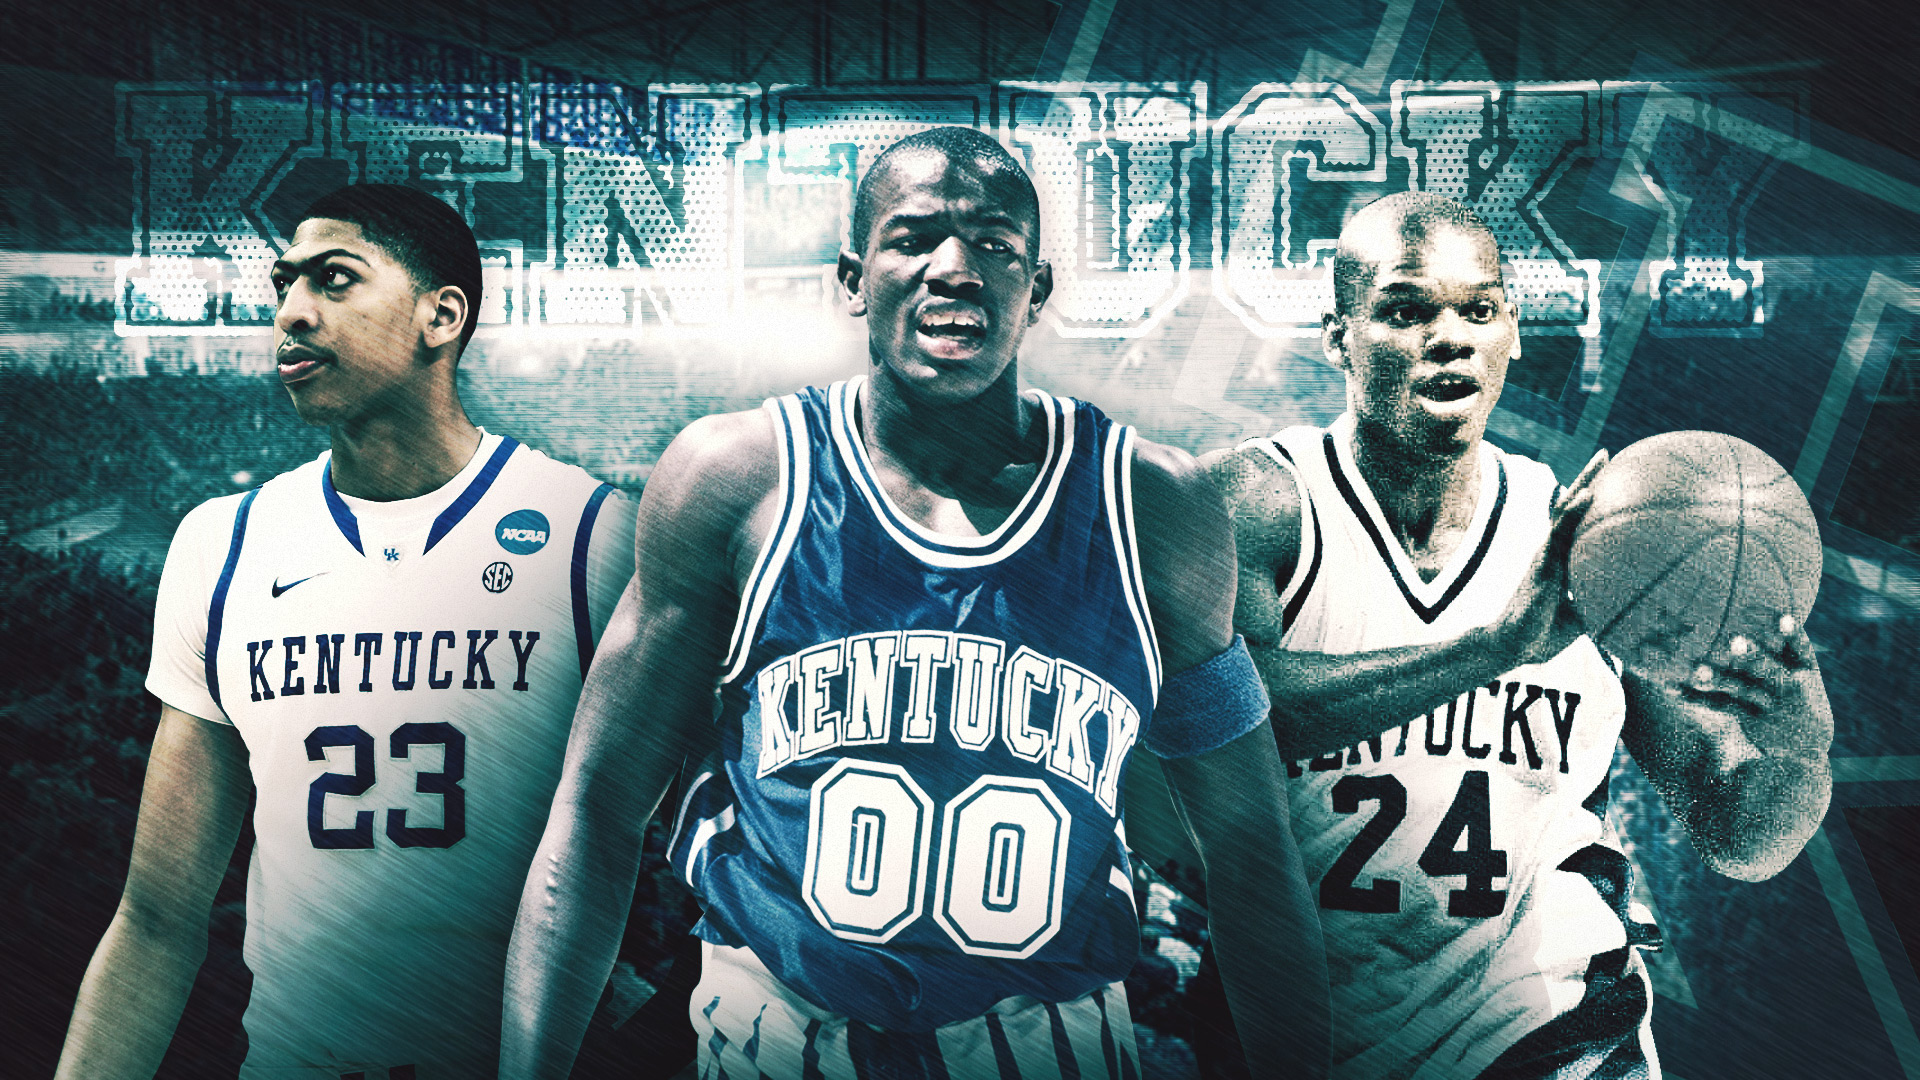 10 greatest Kentucky basketball players of all time | Sporting News